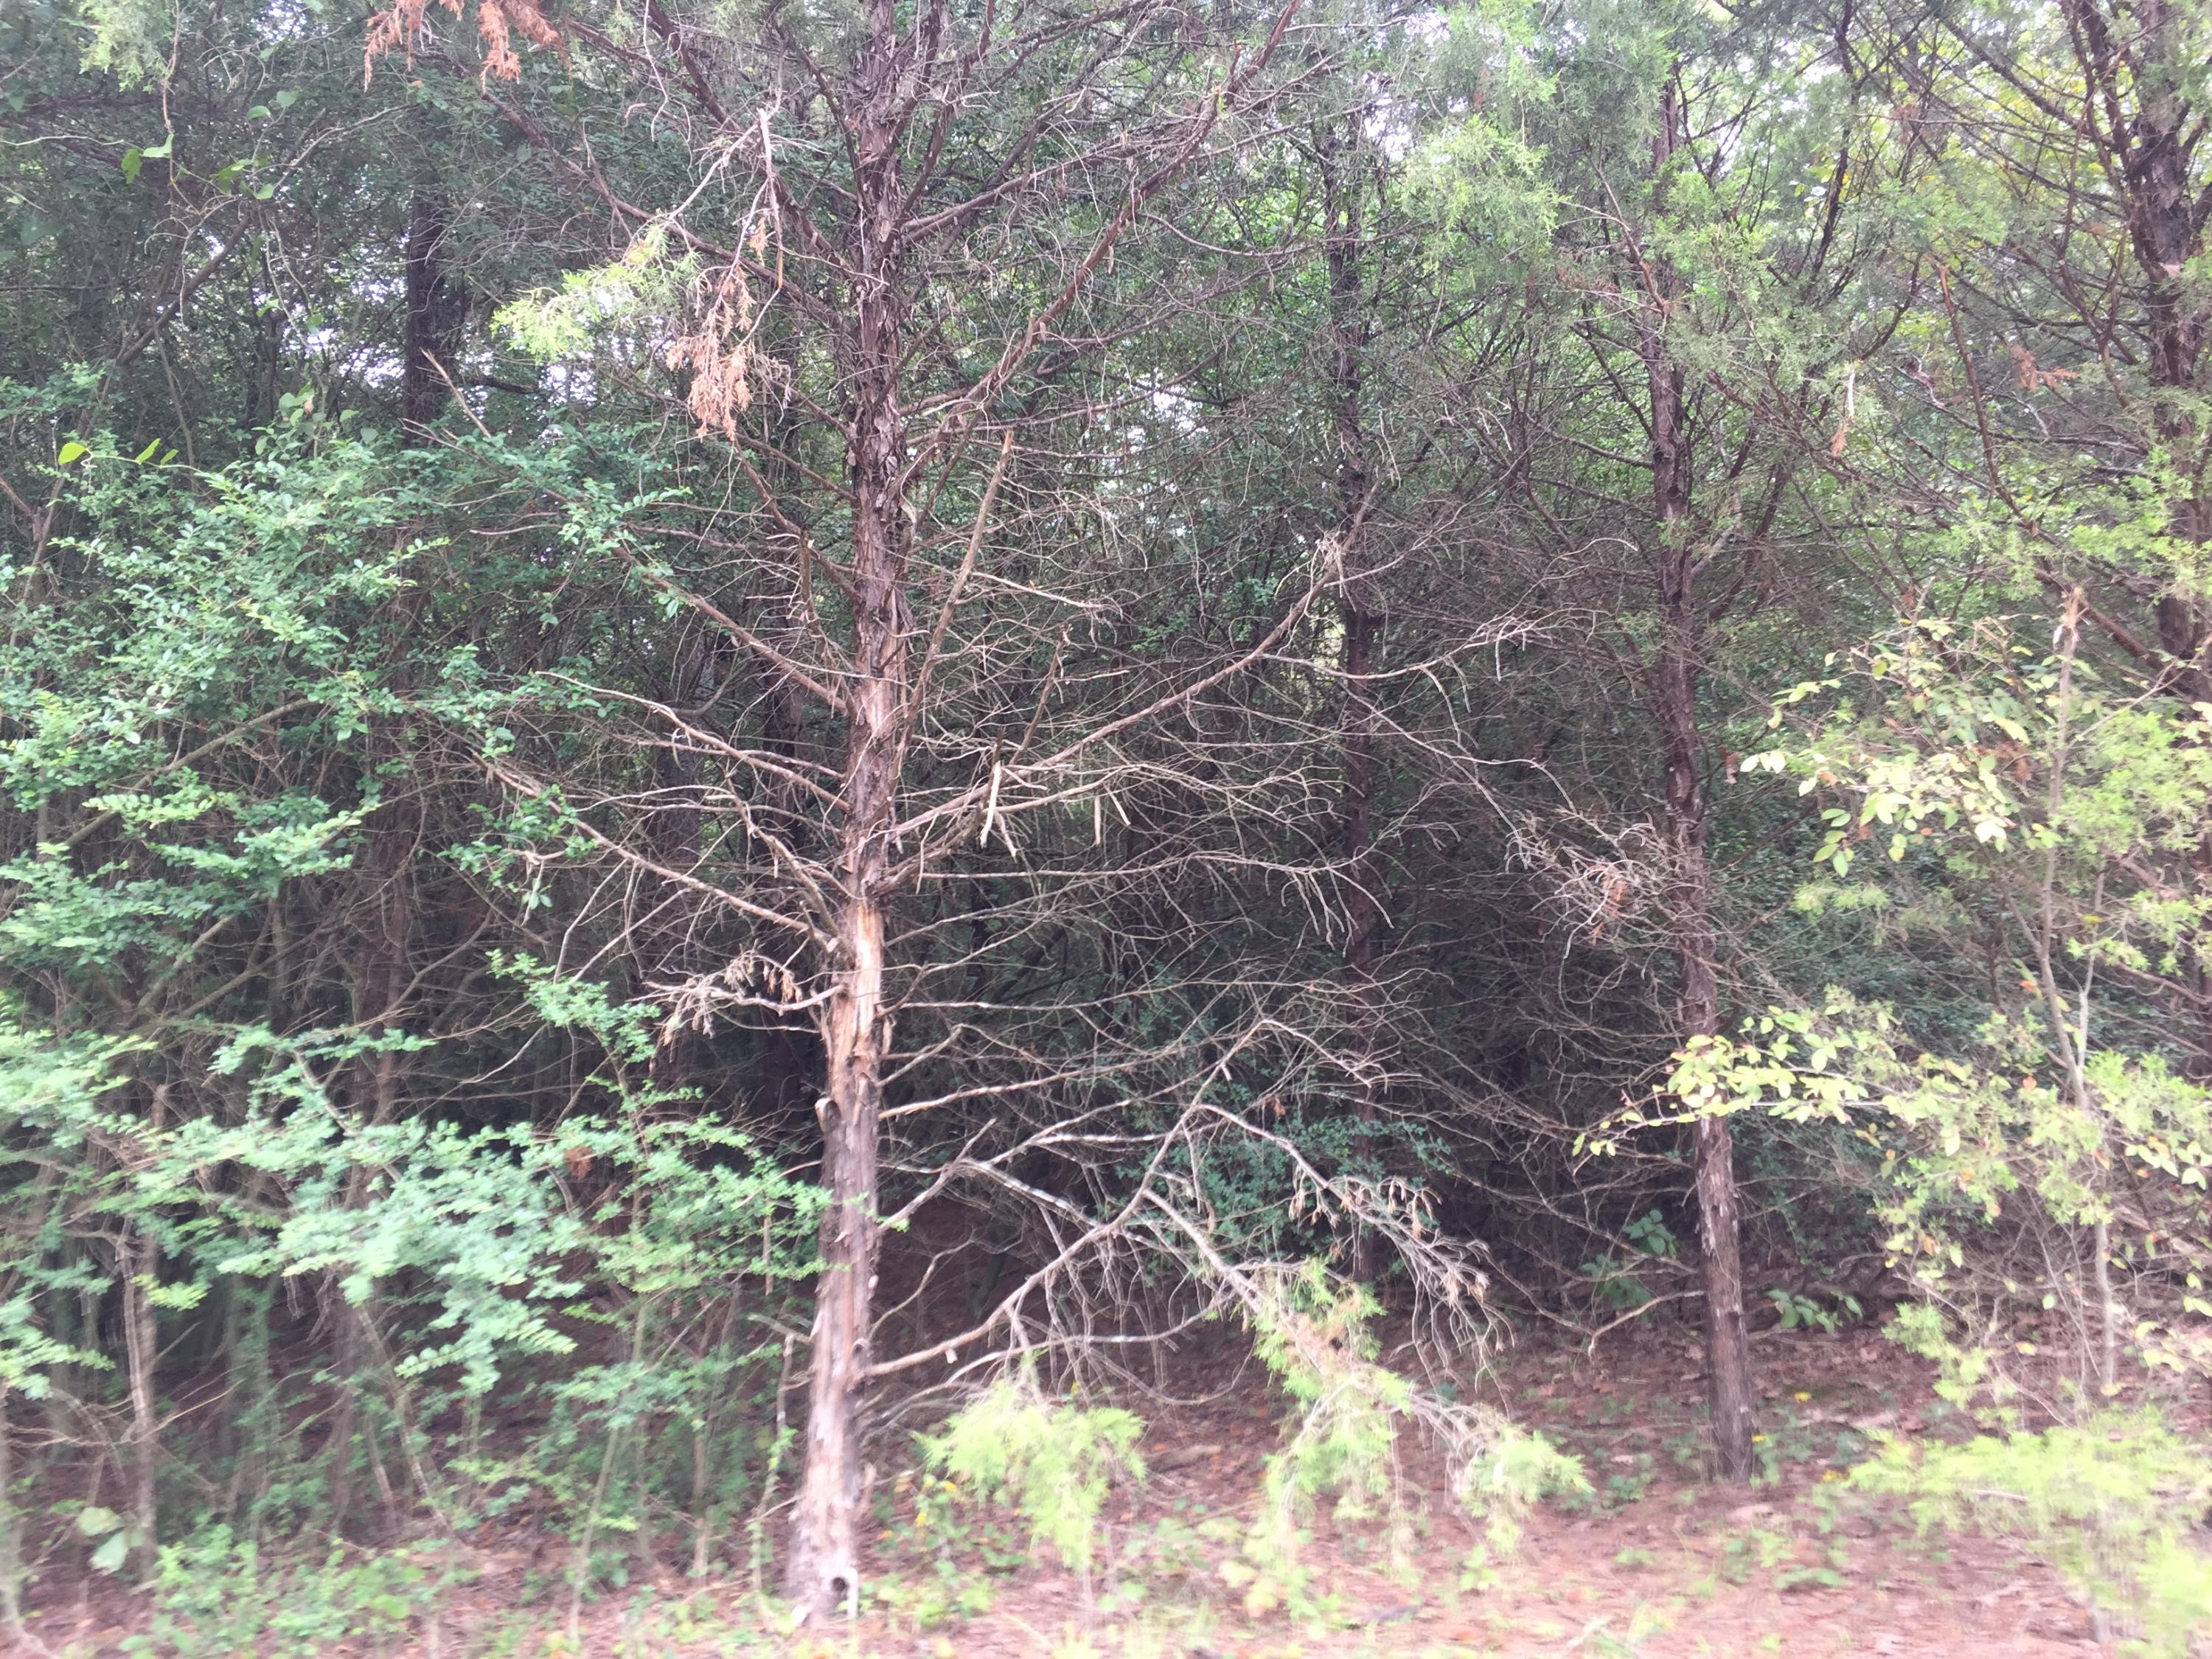 Large photo 6 of land for sale at  Eagle's Nest Subdivision , London, AR, listed by Coldwell Banker Premier Realty